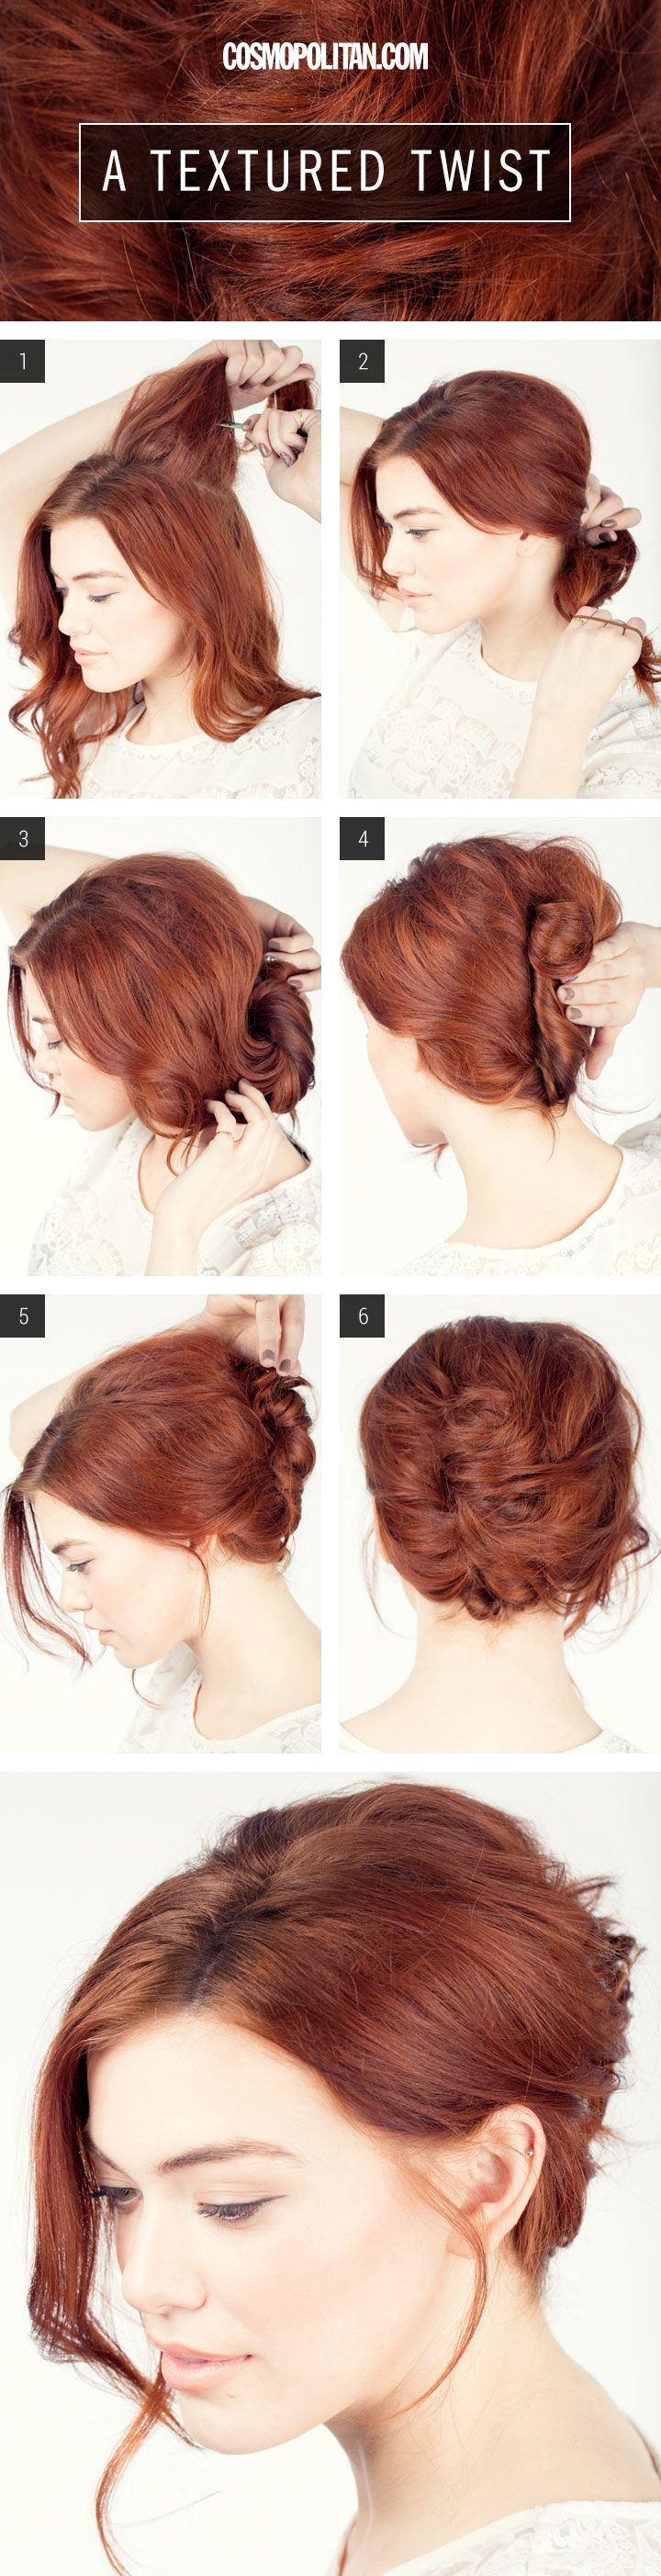 Get this sultry textured twist in just 6 easy steps!